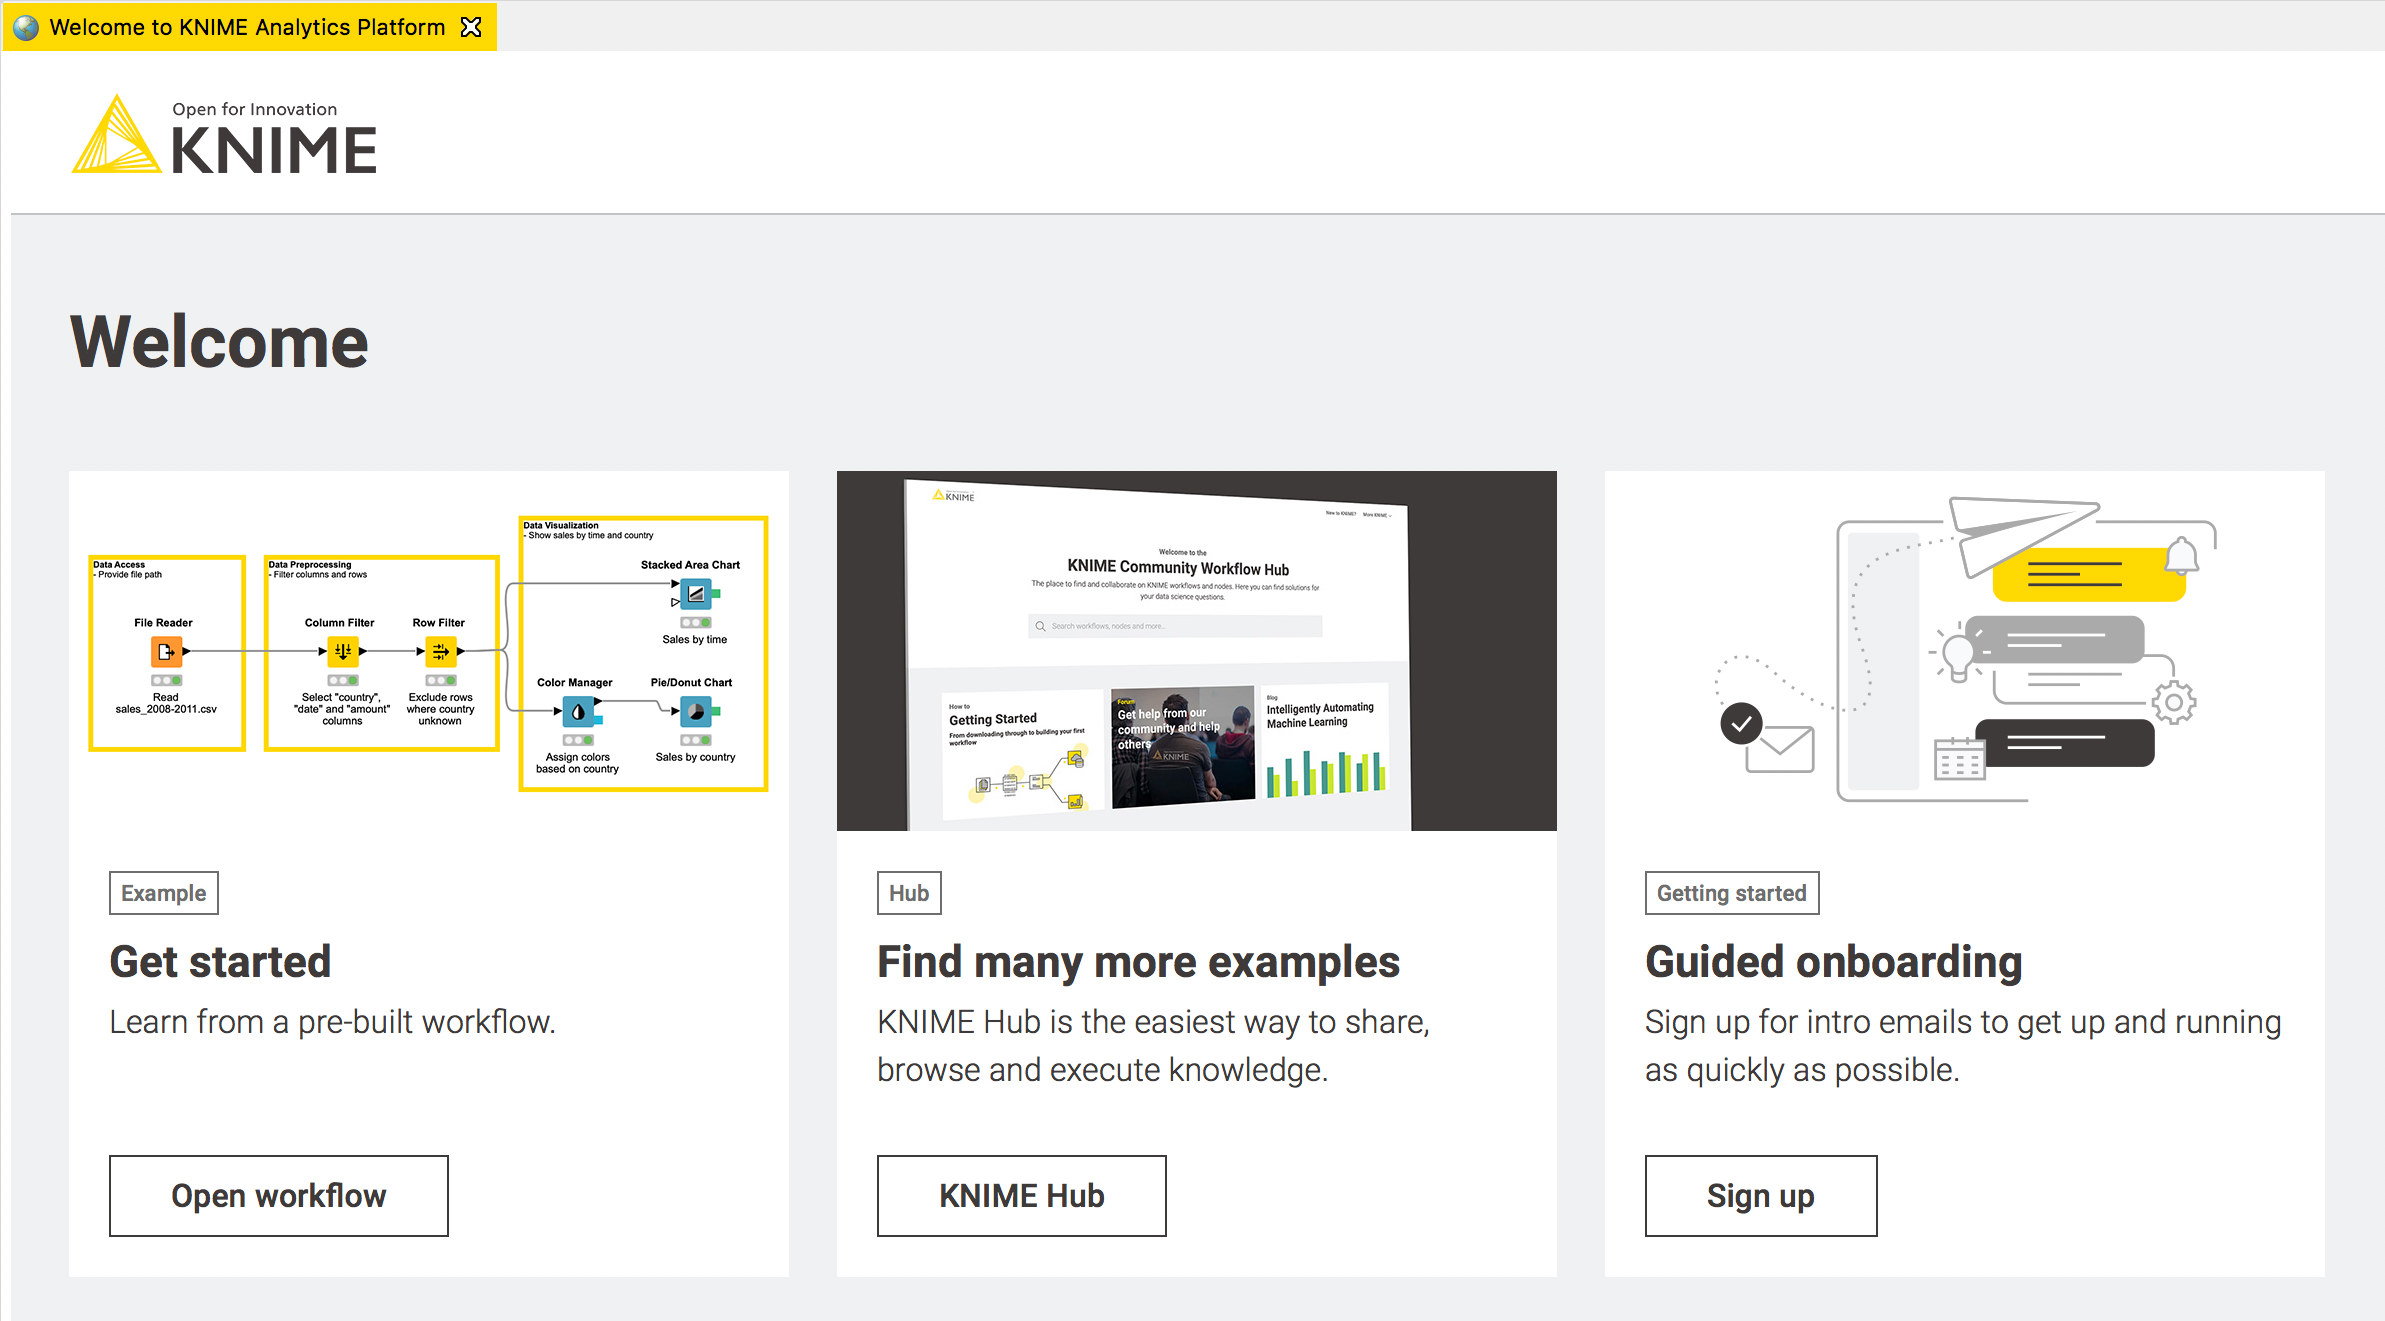 Seven things to do after installing KNIME